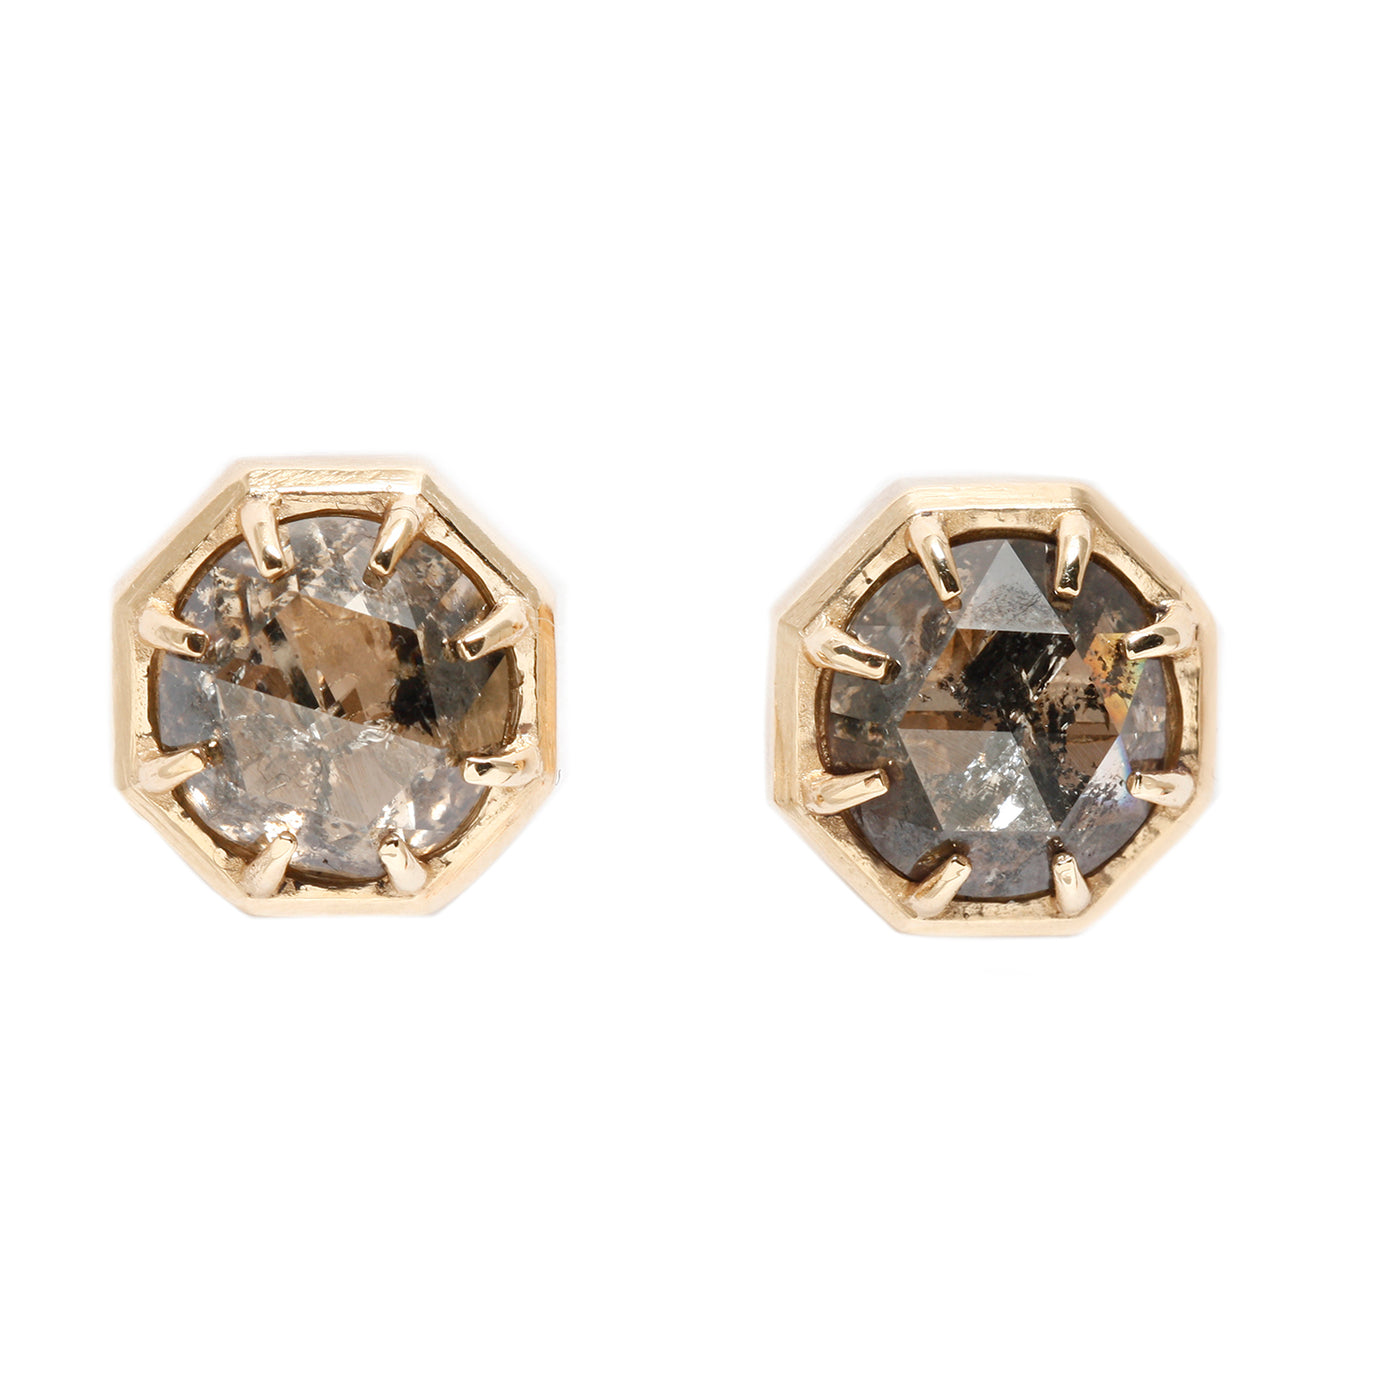 Lauren Wolf Jewelry Champagne Diamond Studs